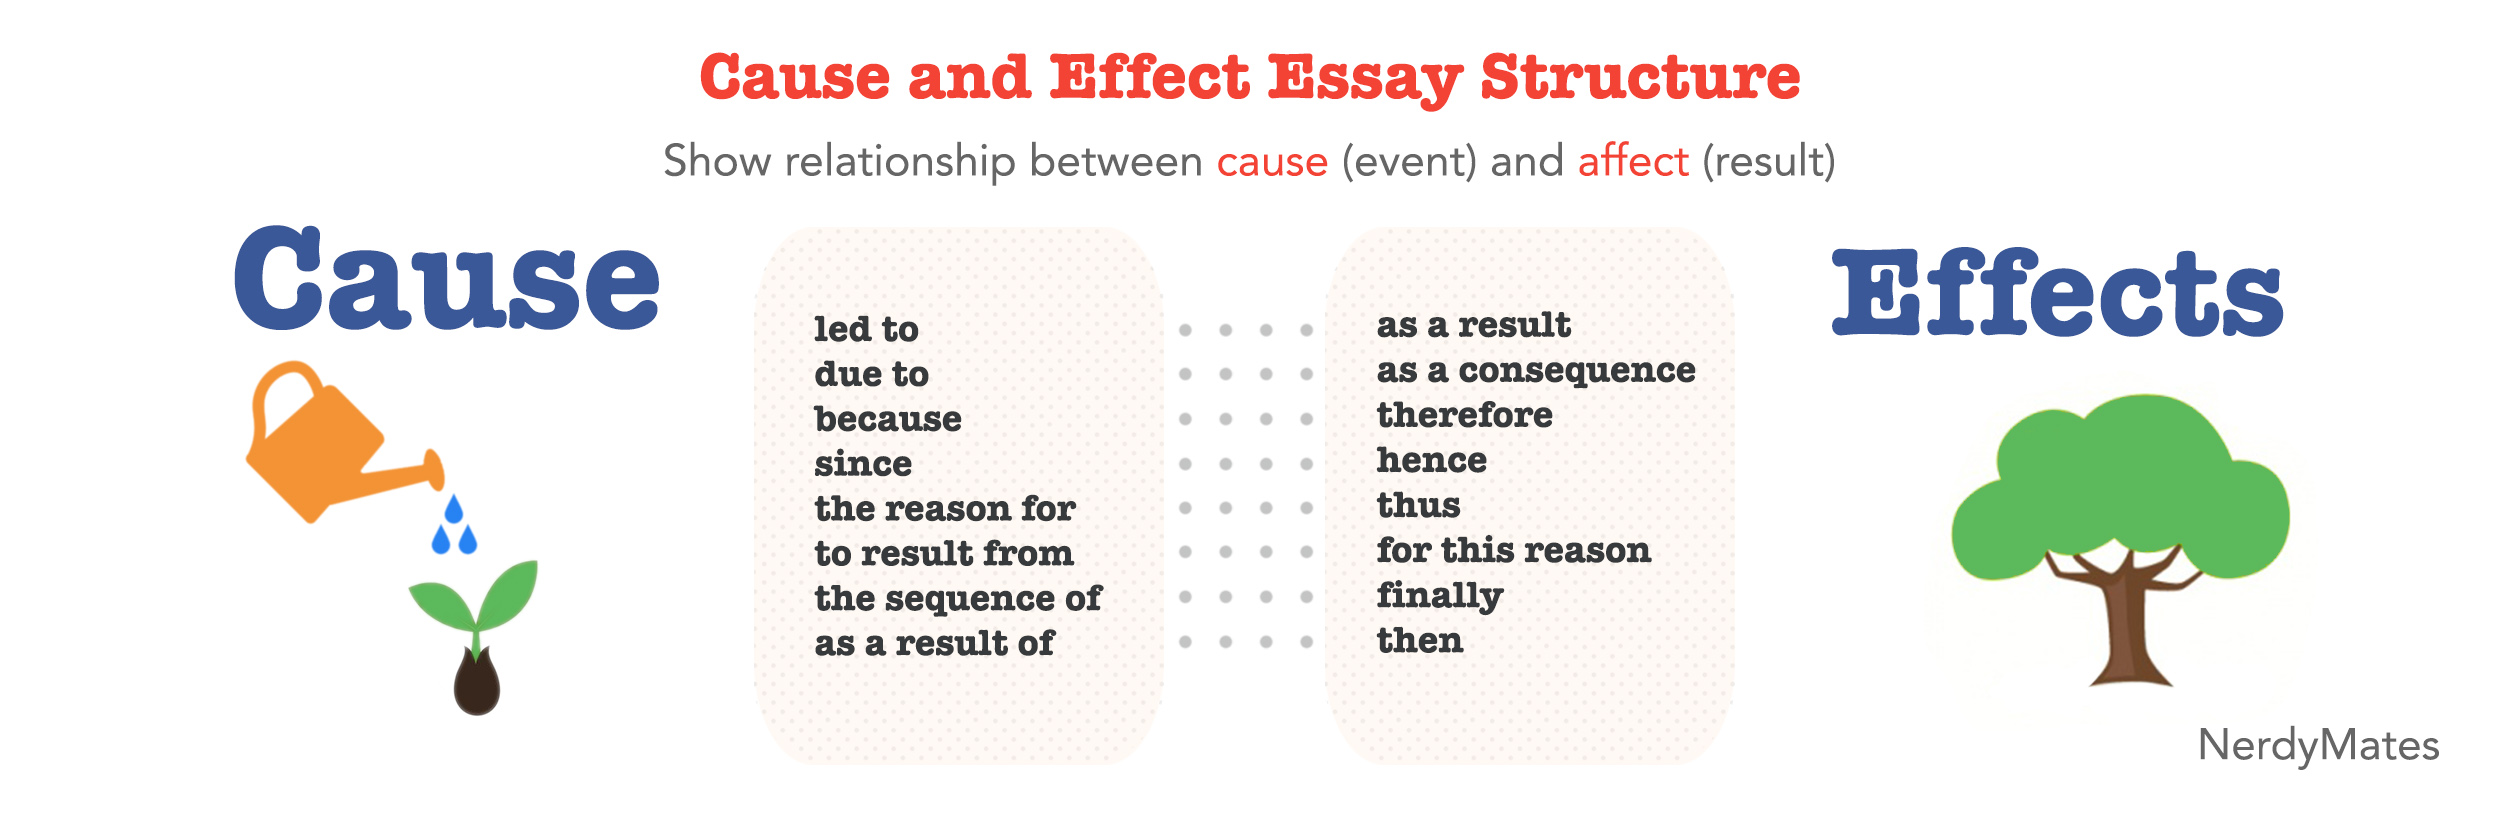 cause and effect essays topics 100% free papers on cause and effect essay sample topics, paragraph introduction help, research & more class 1-12, high school & college.